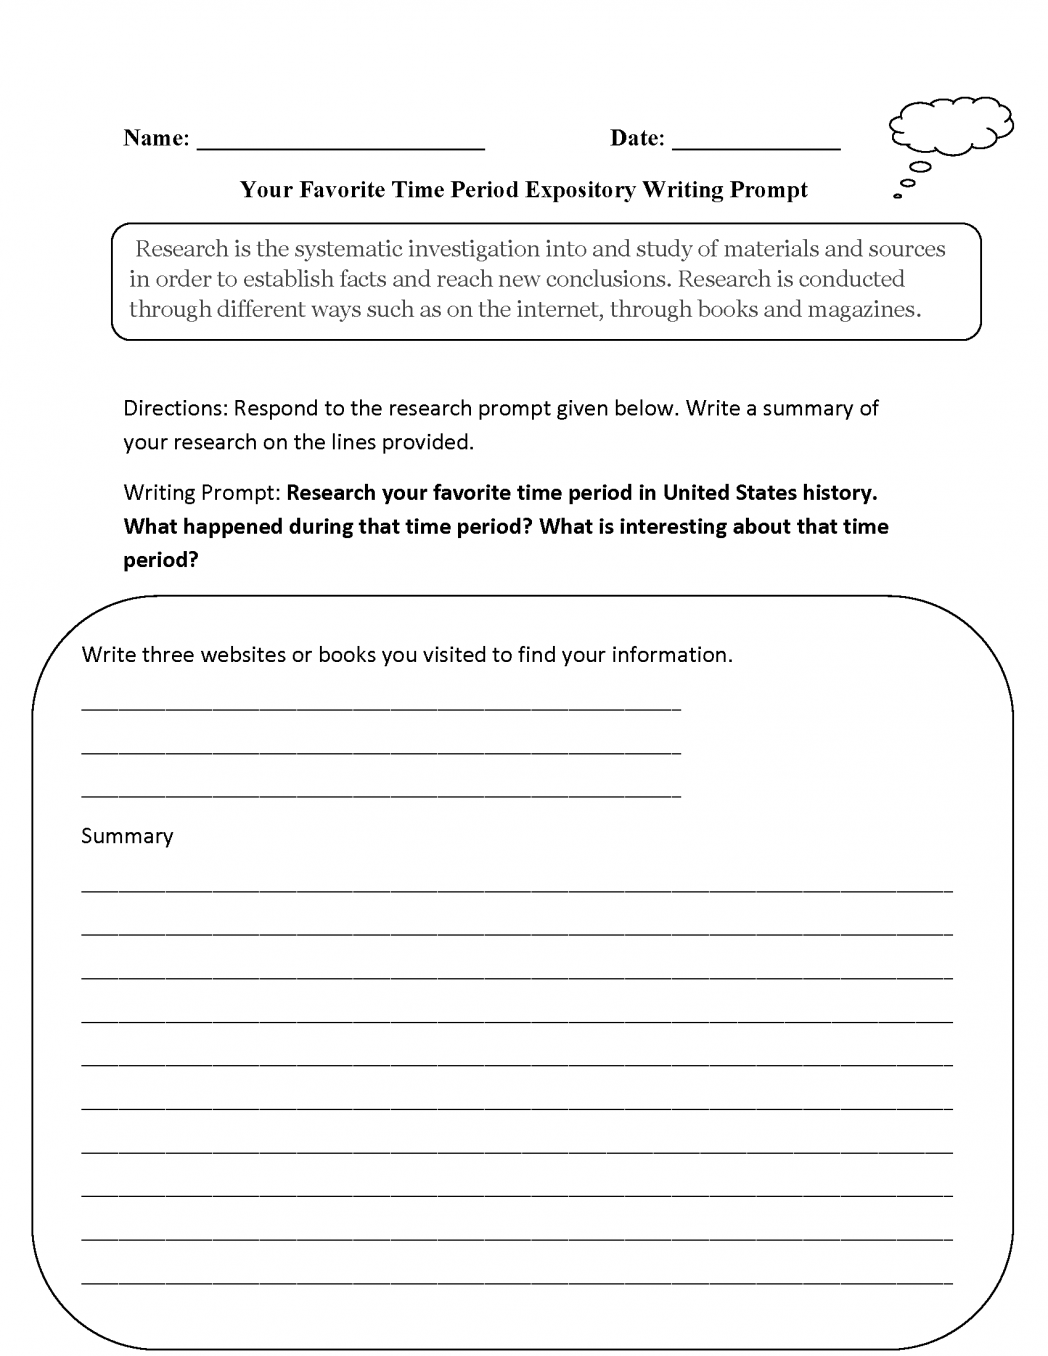 018 Essay Example Good Informative Topics Prompts Favorite Time Period Expository Writing P To Write An On The Topic Of Immigration Remarkable Prompt 4th Grade For High School College Students Full